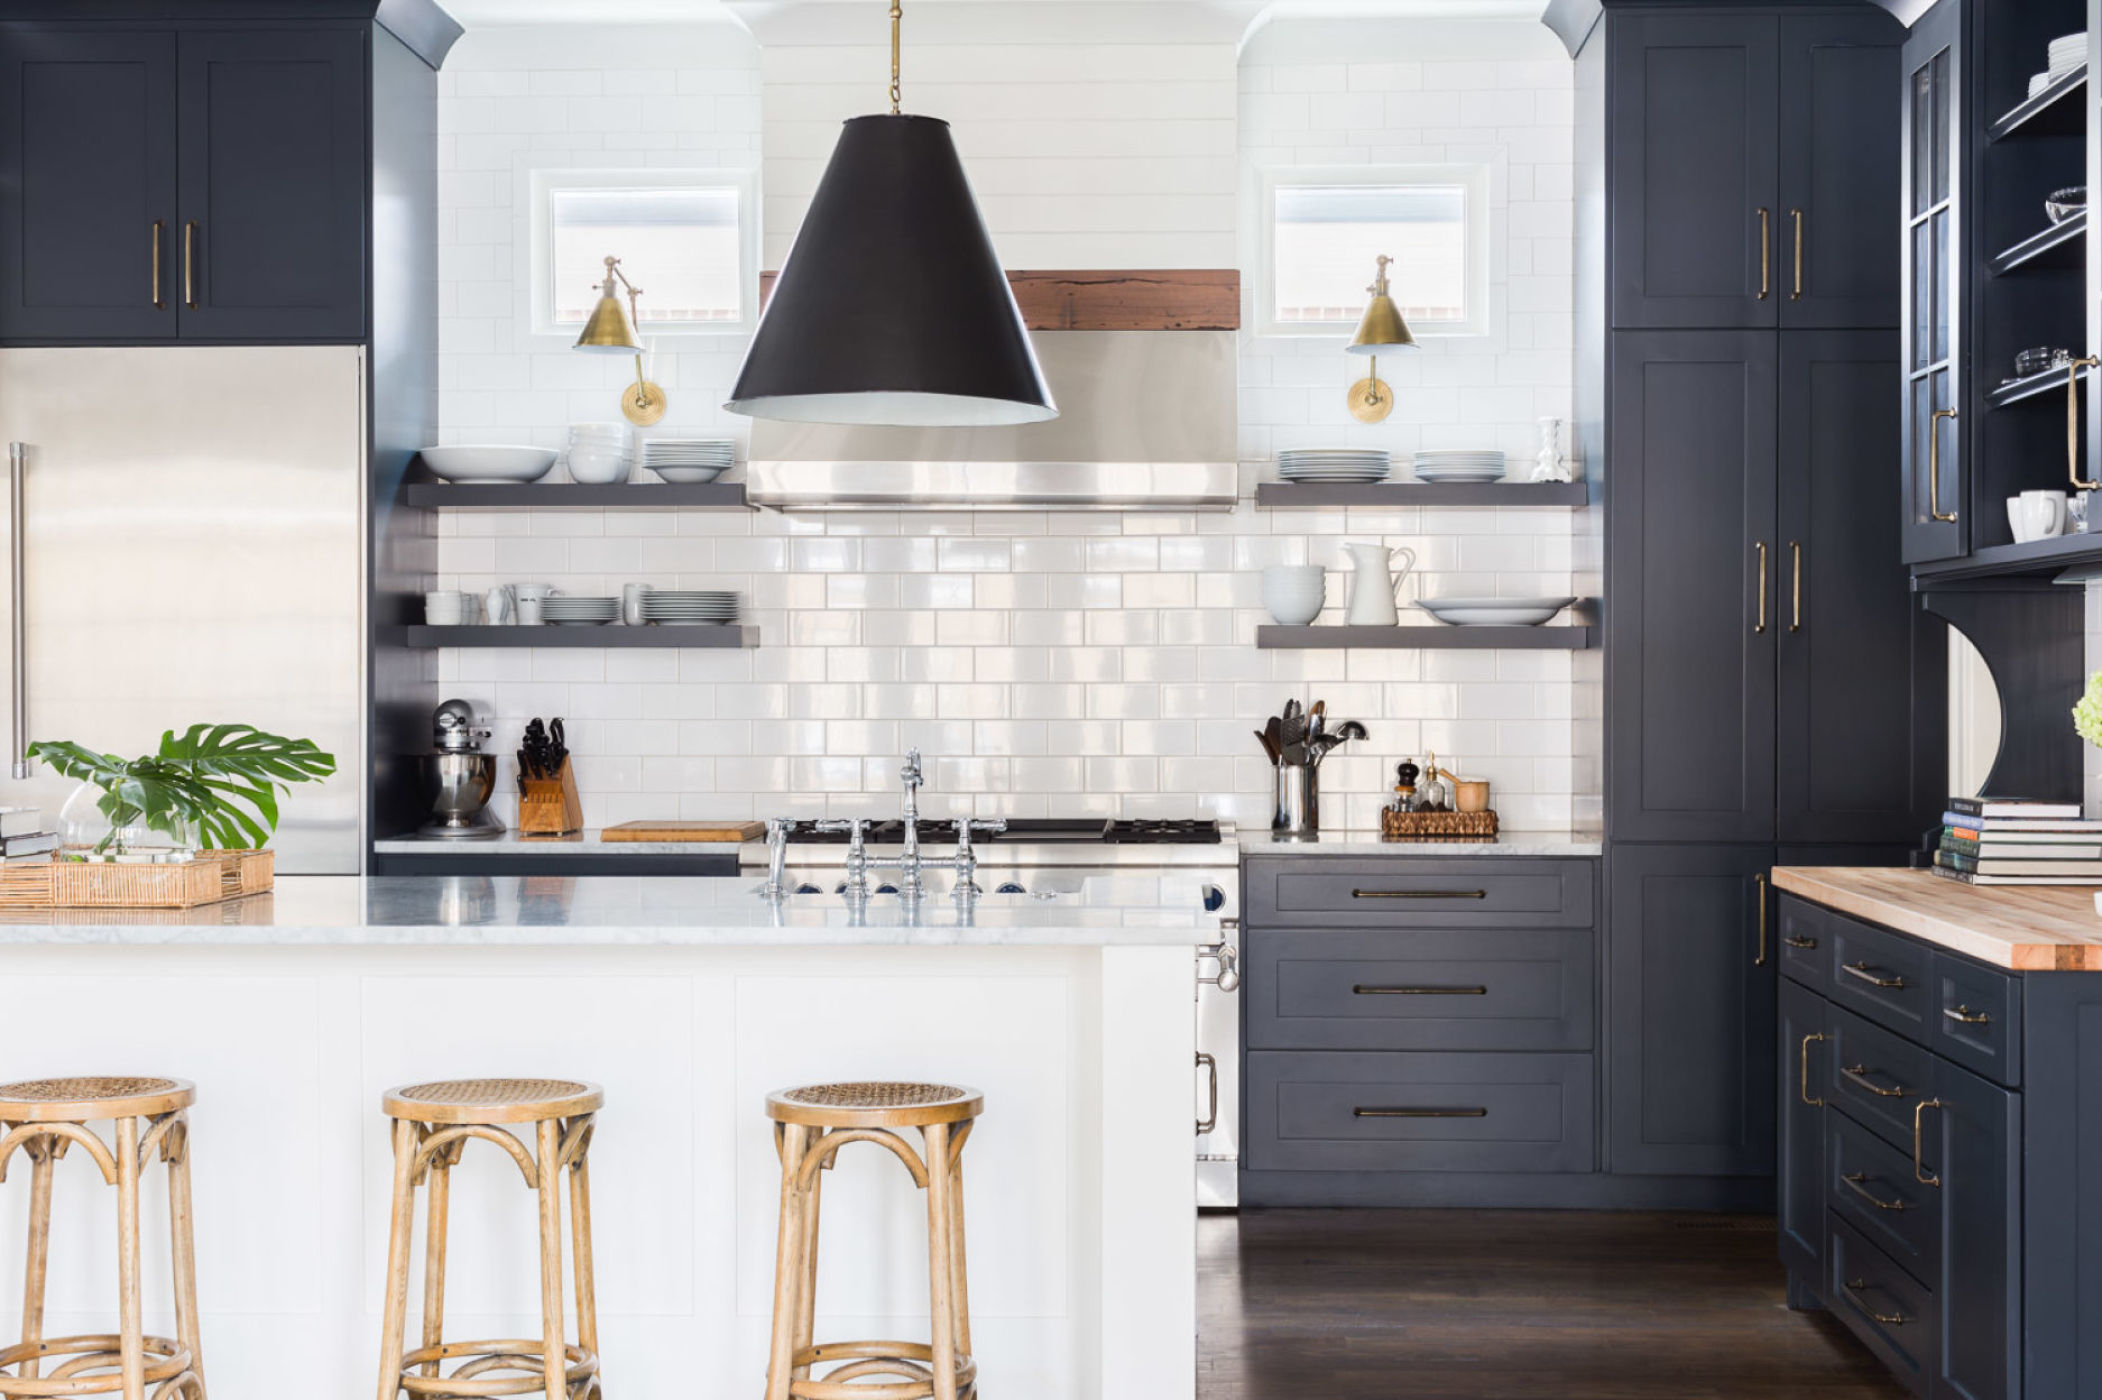 Black and white kitchen by Jason Arnold Interiors